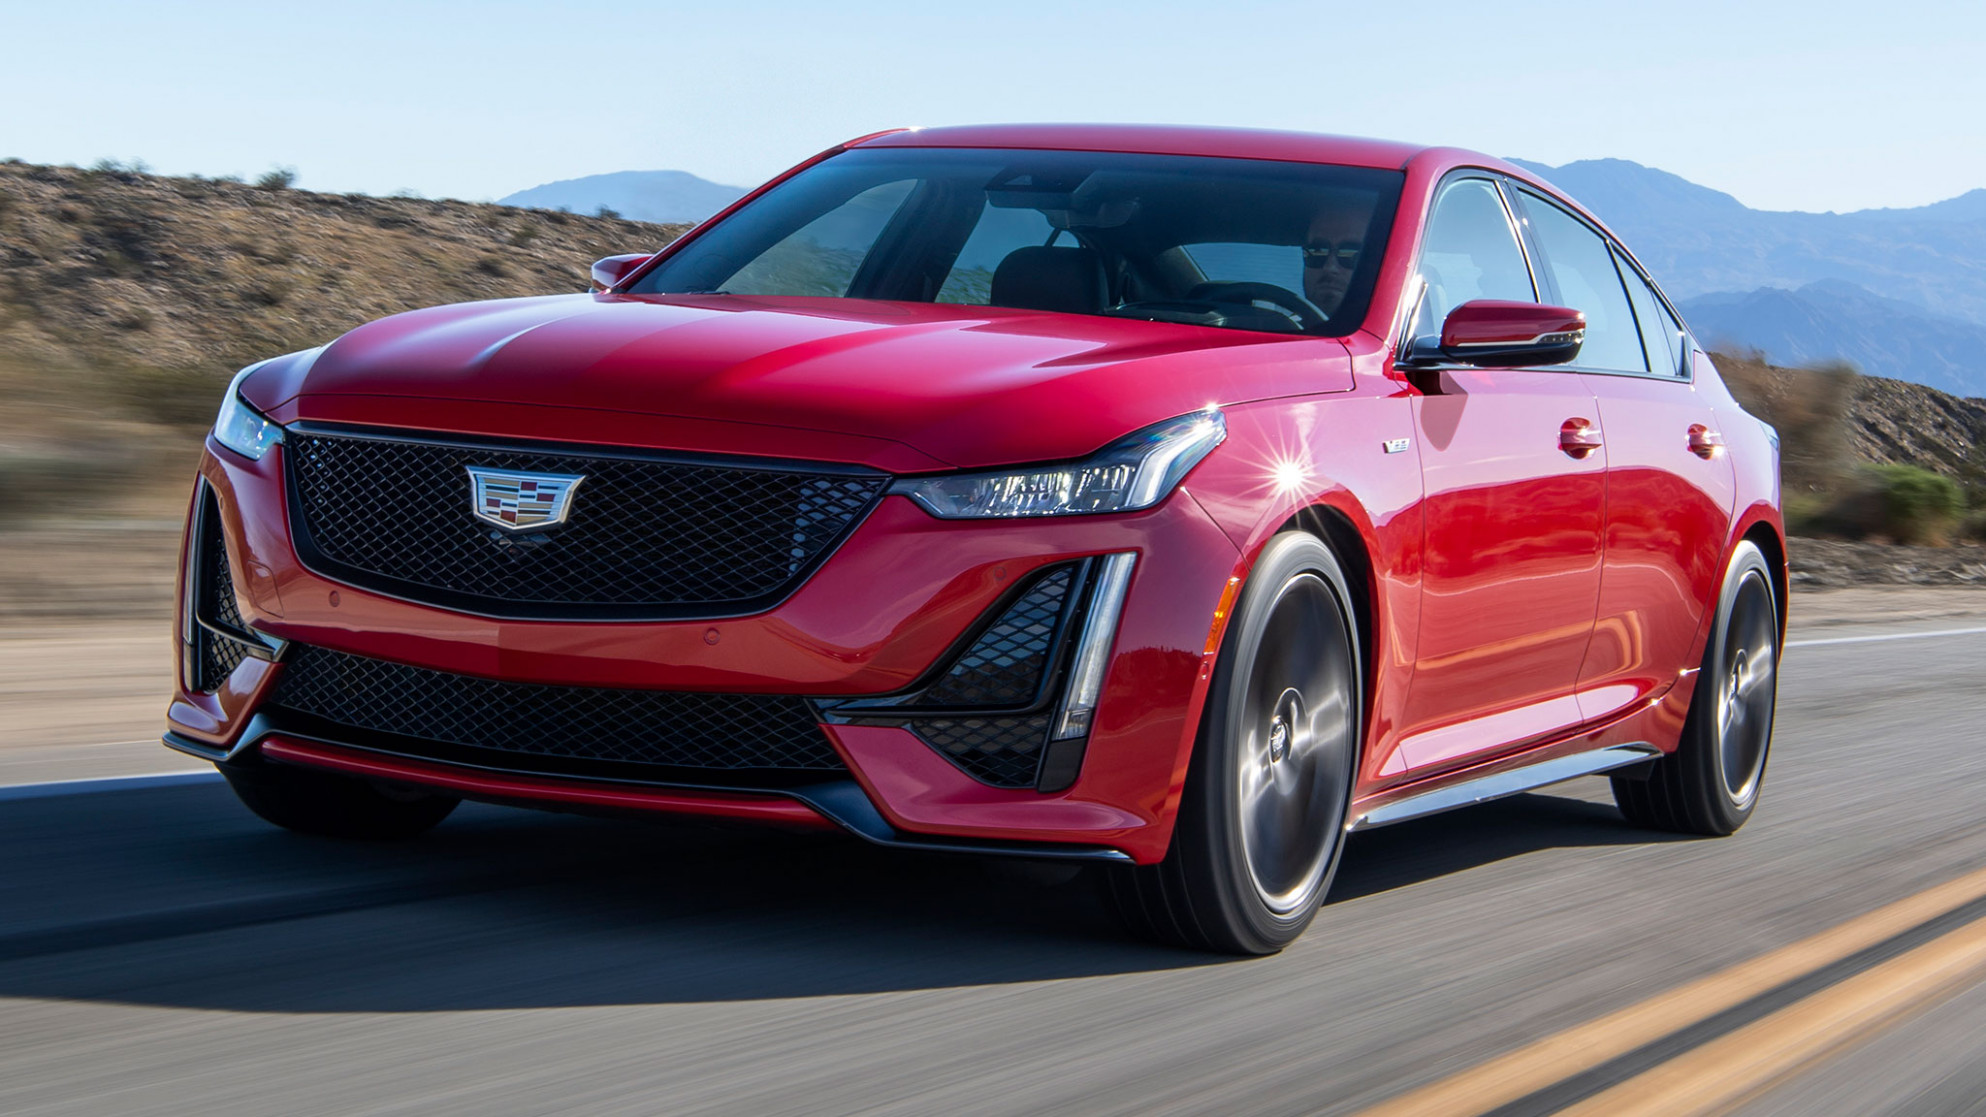 6 Cadillac CT6-V First Drive: Fighting Assumptions